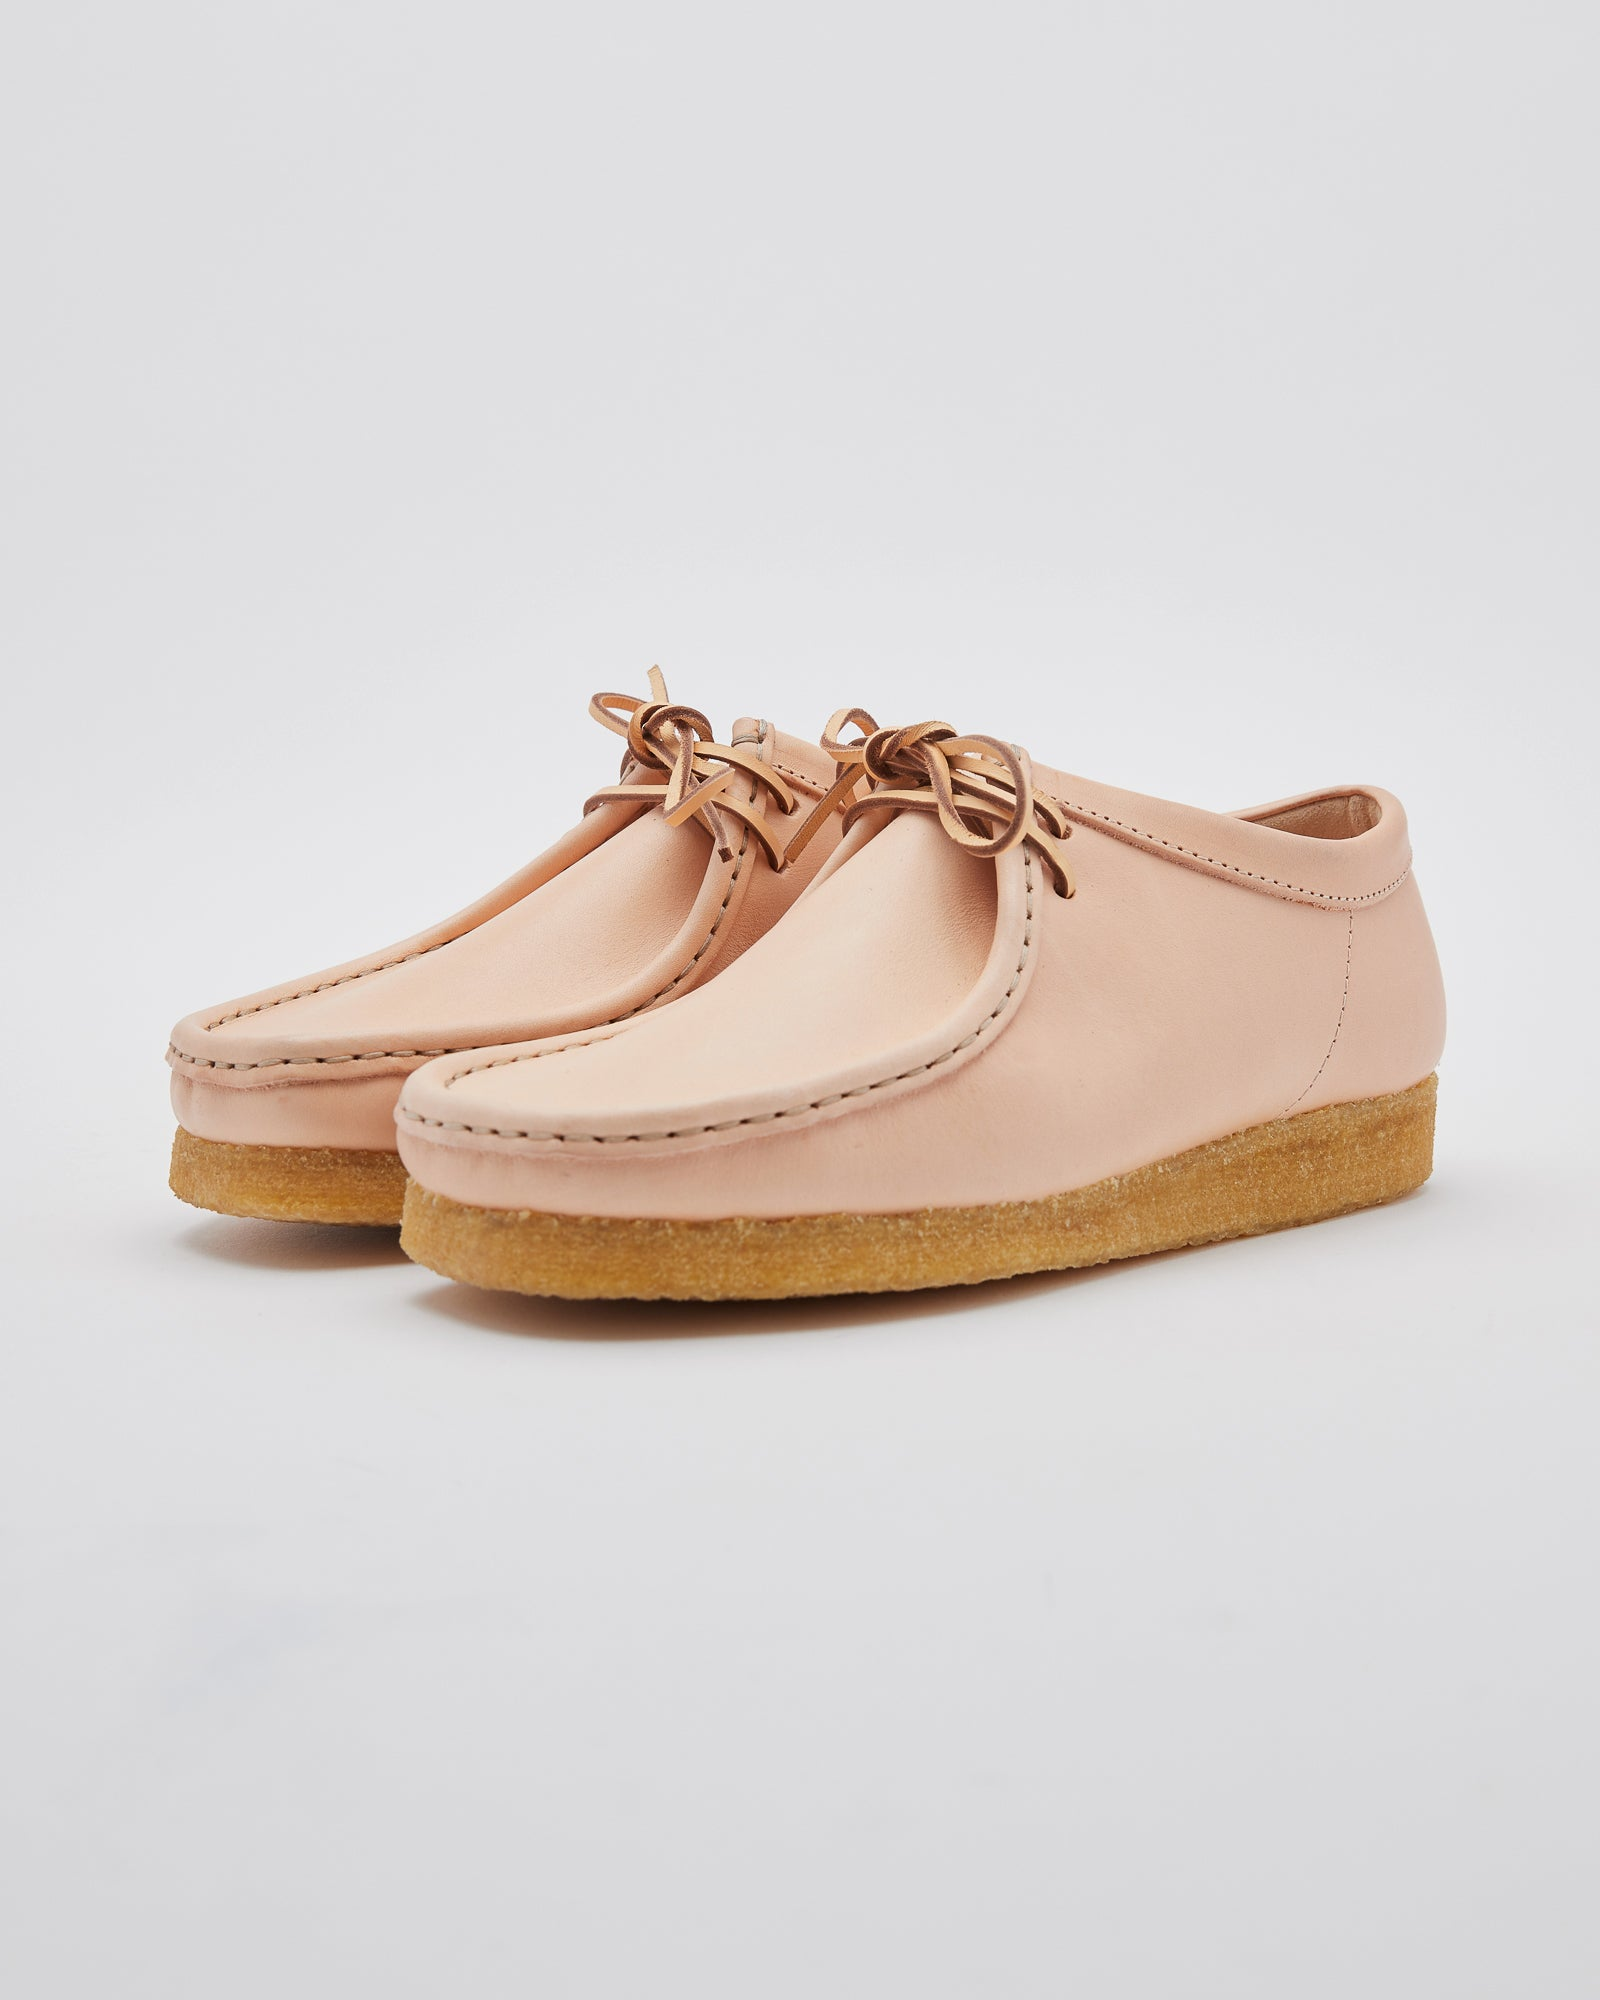 Wallabee in Natural Tan